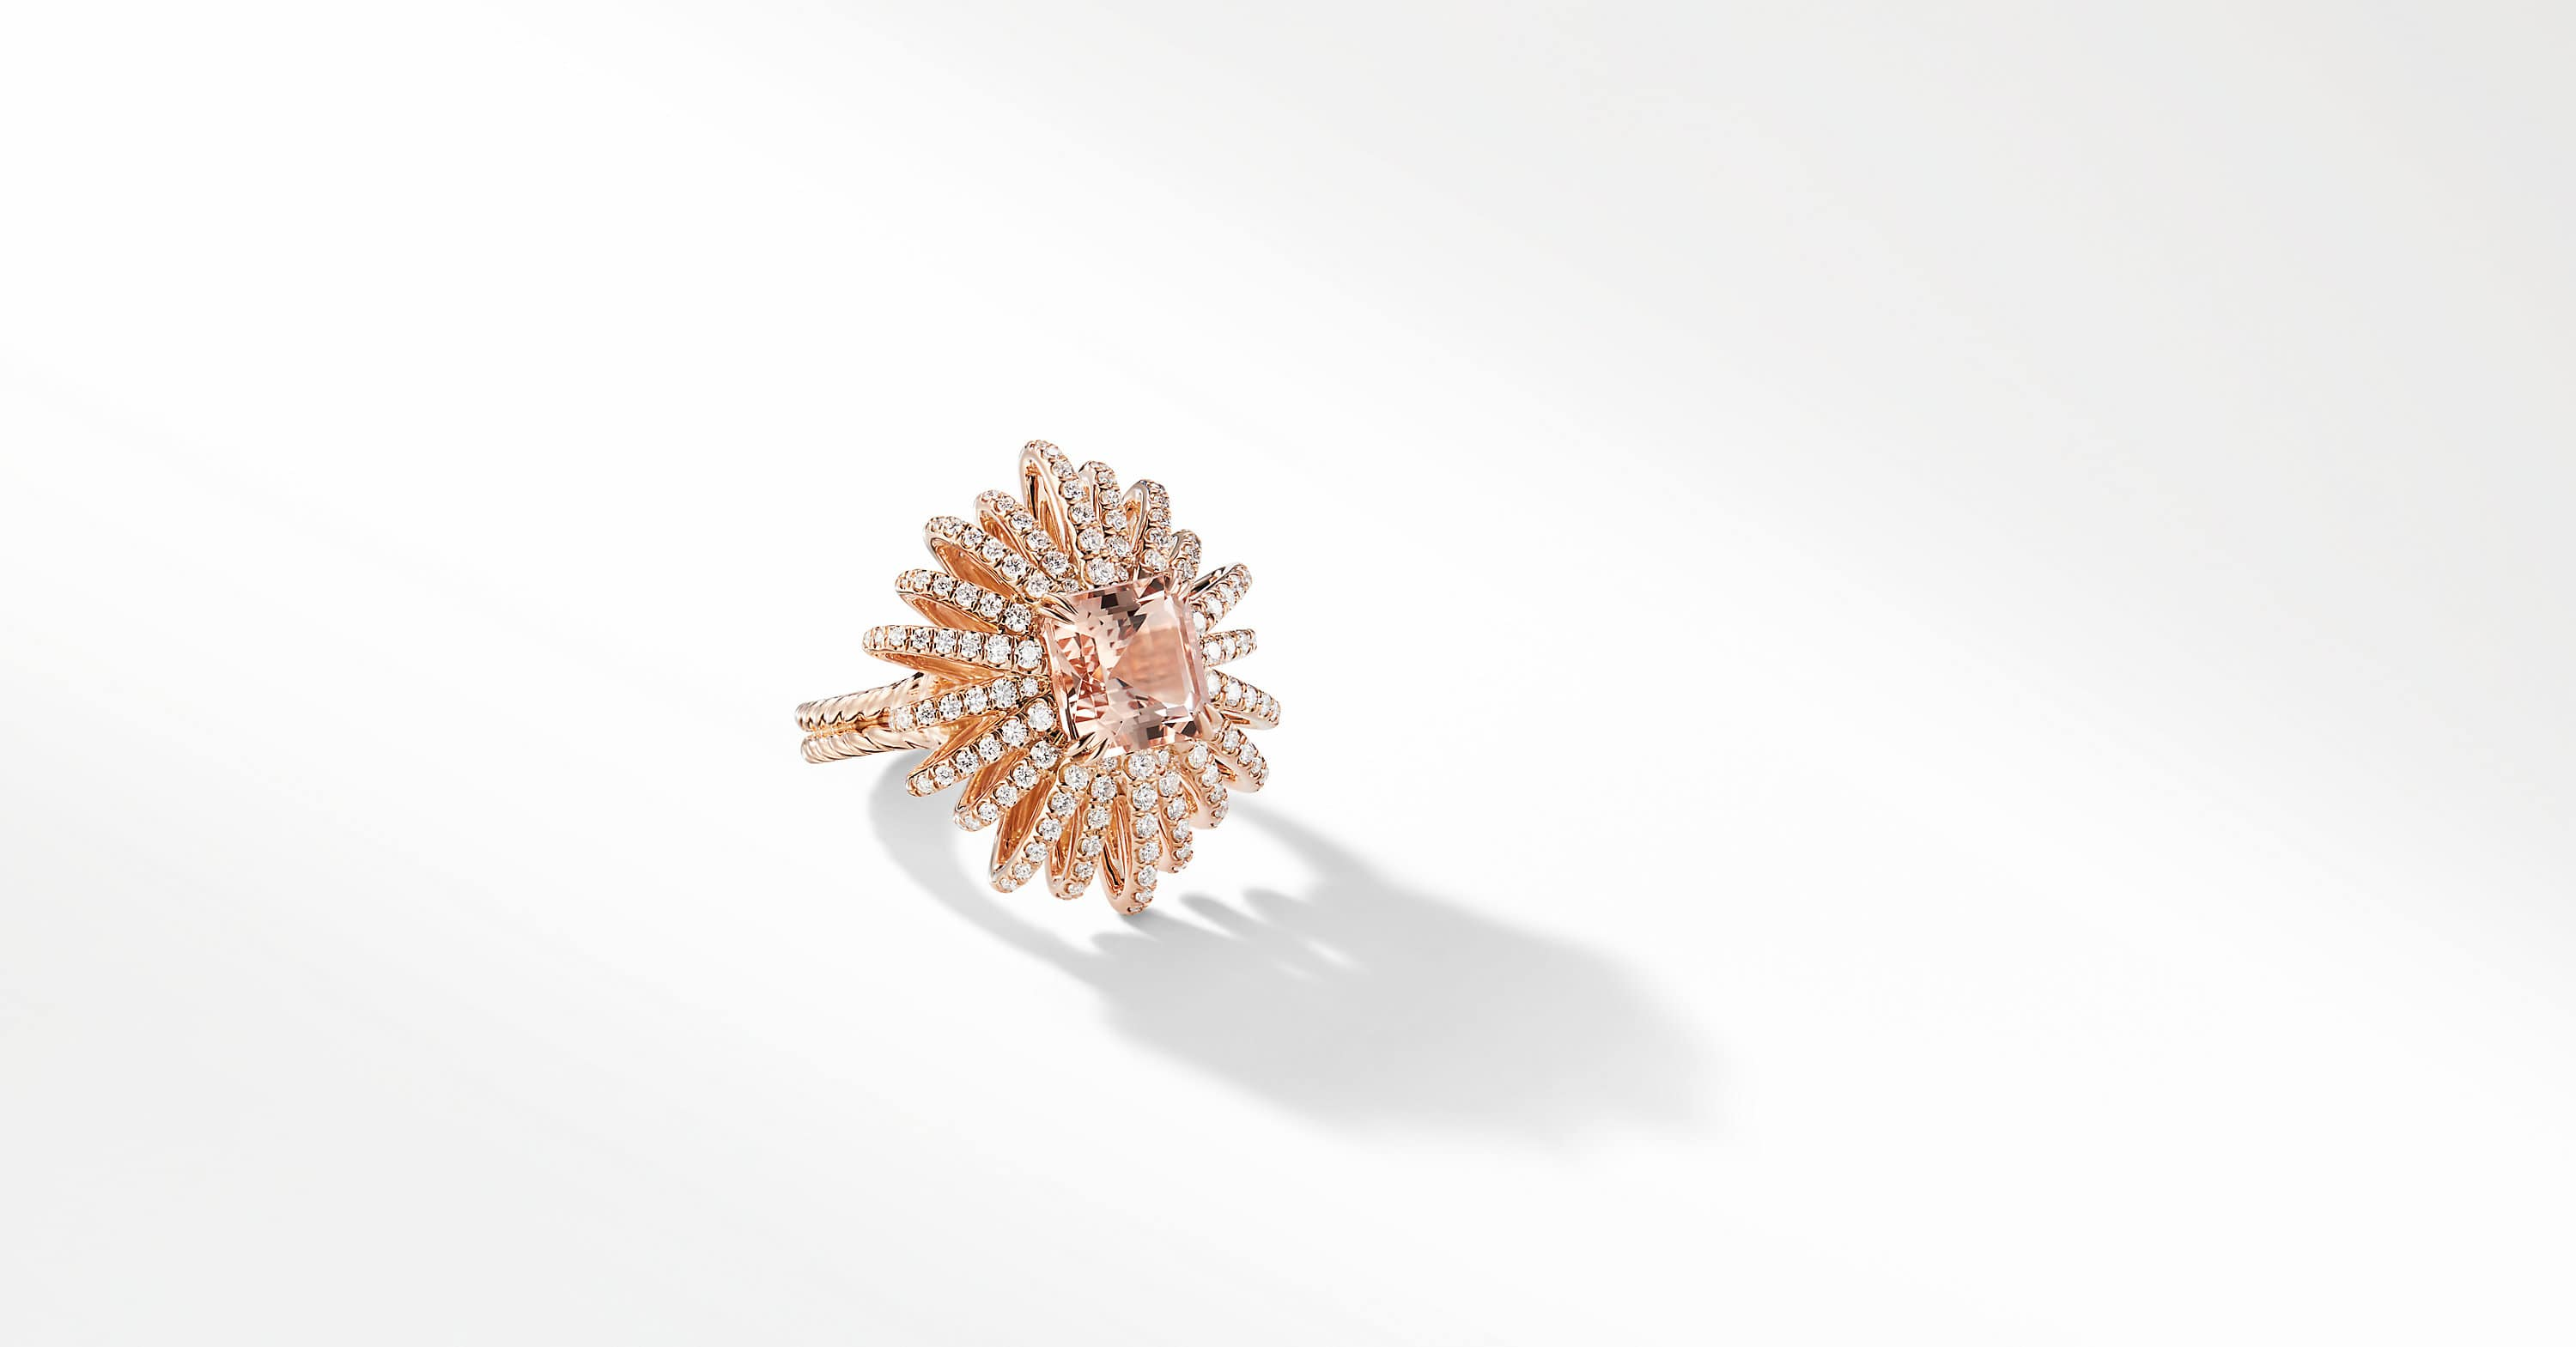 Bague Starburst en or rose 18 carats et diamants, 25 mm